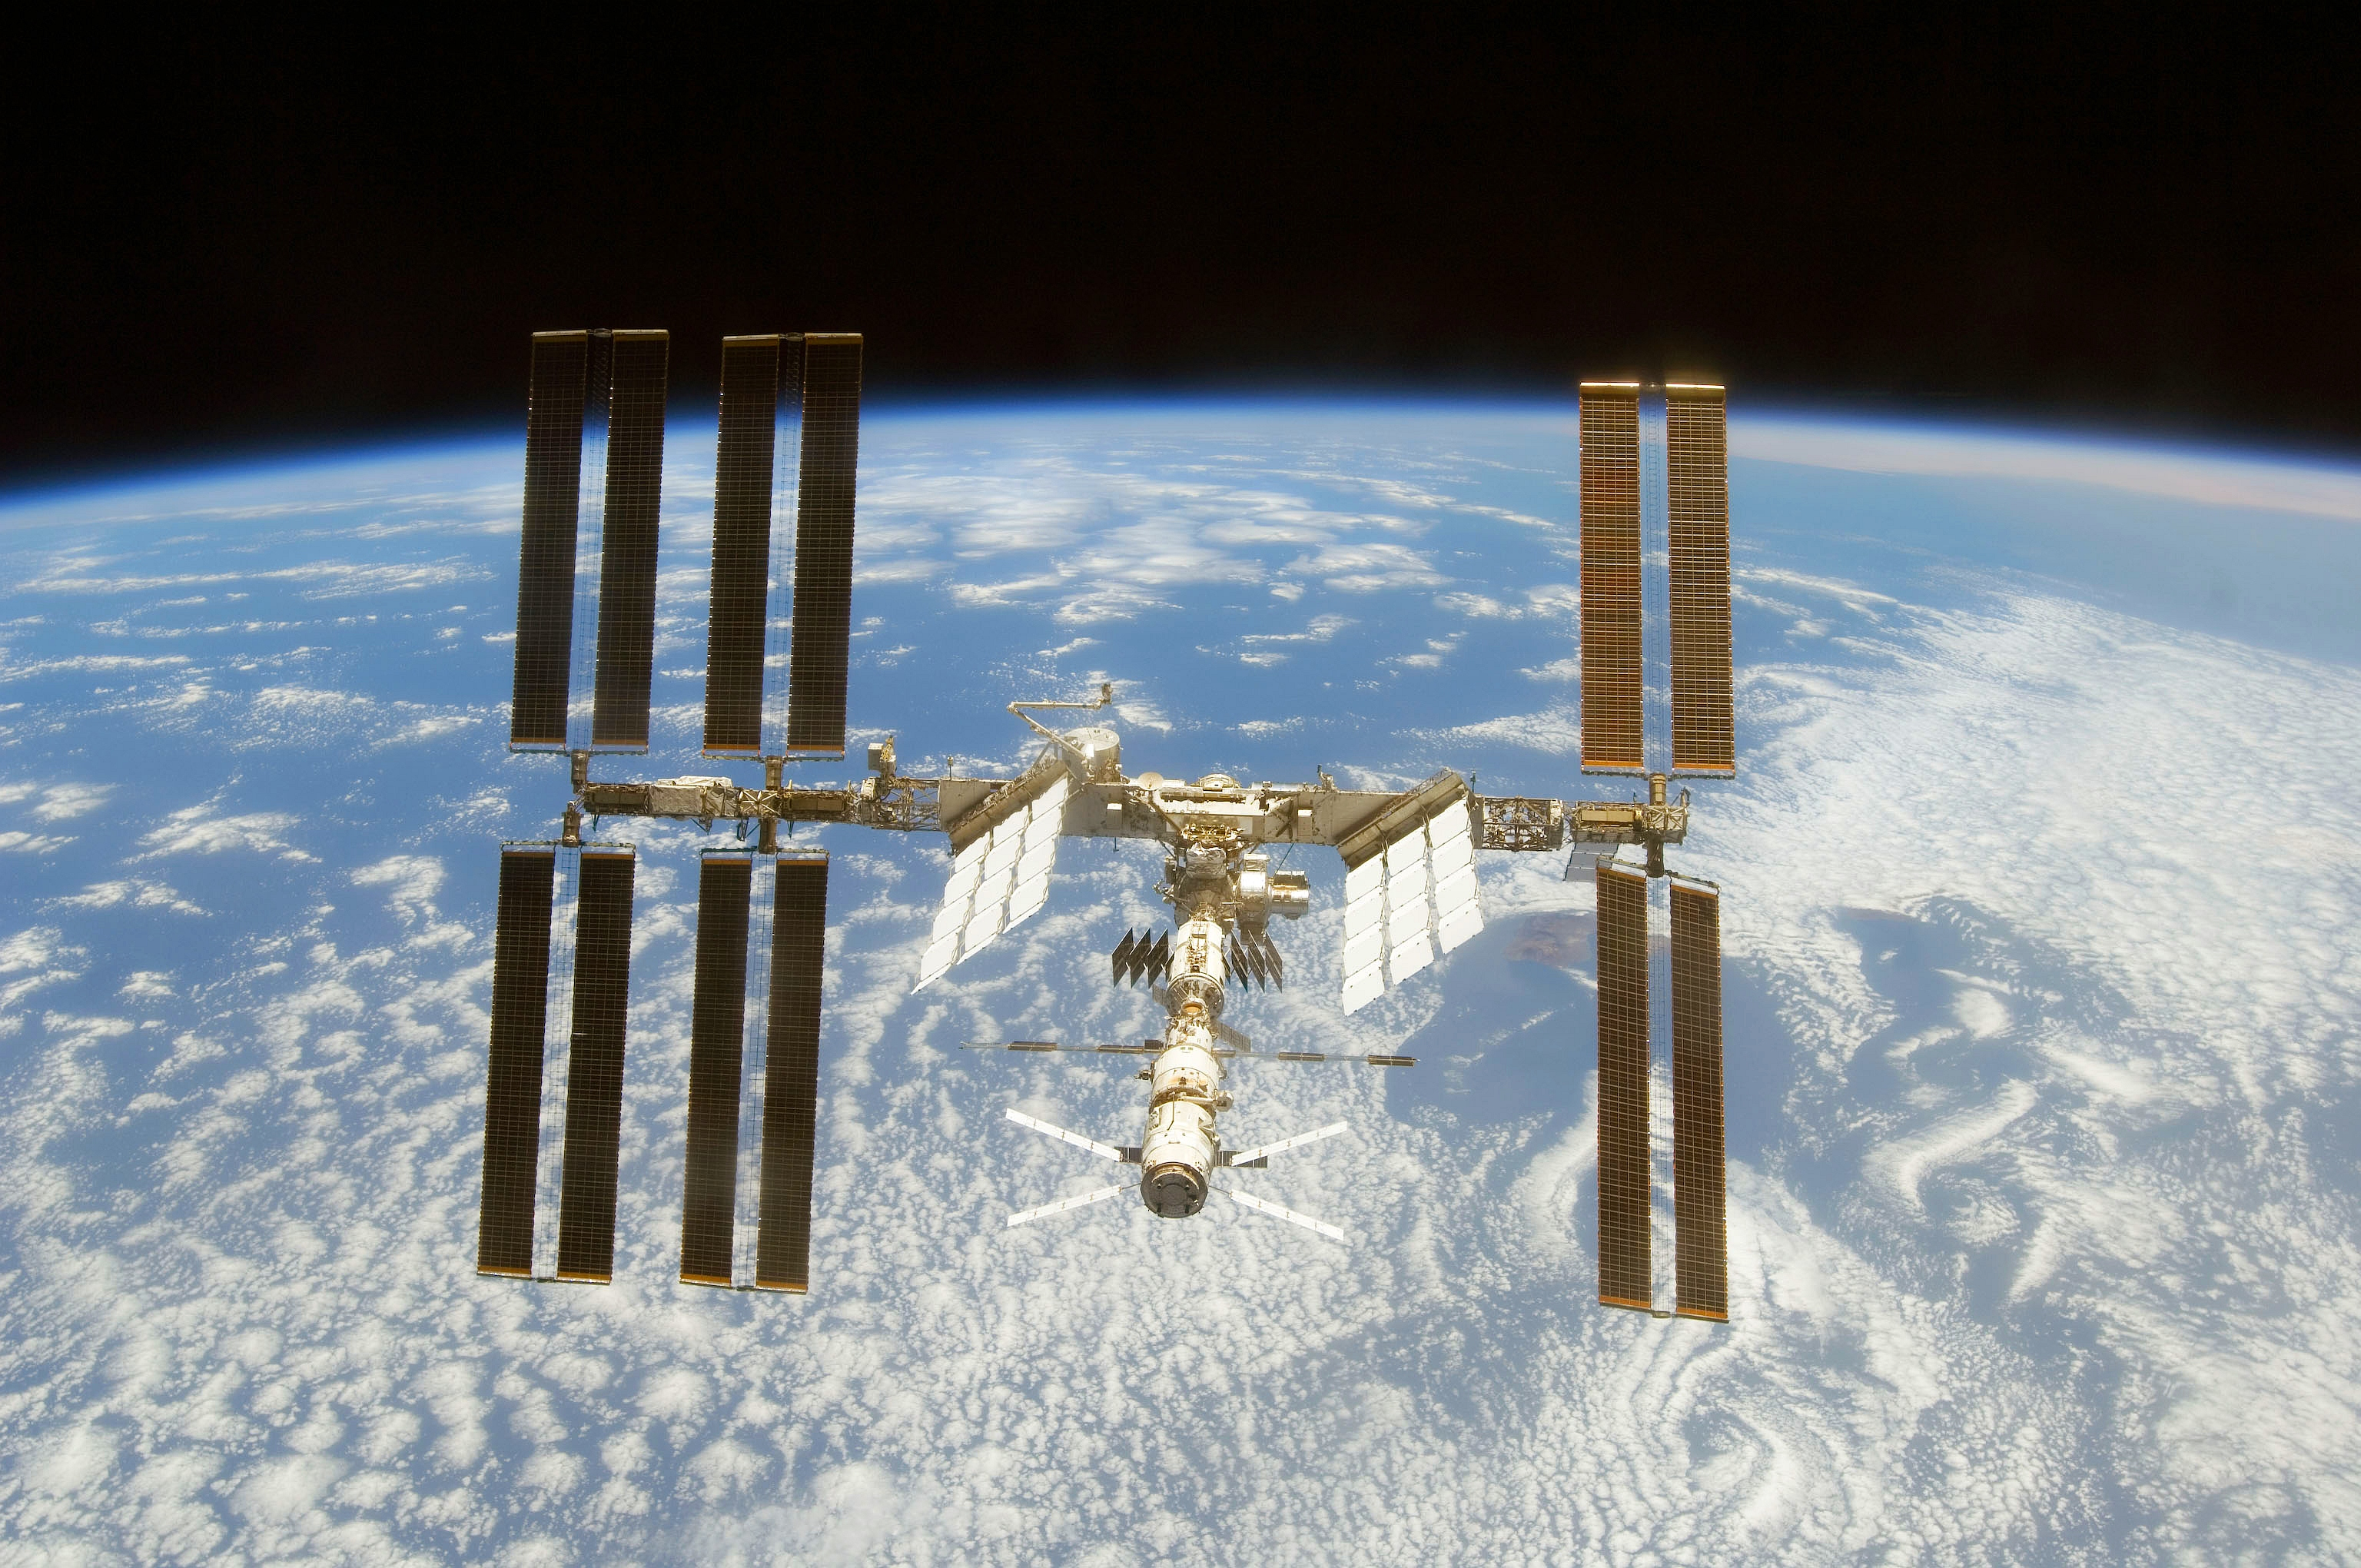 SPACE WALLPAPER: ISS and Earth Wallpaper